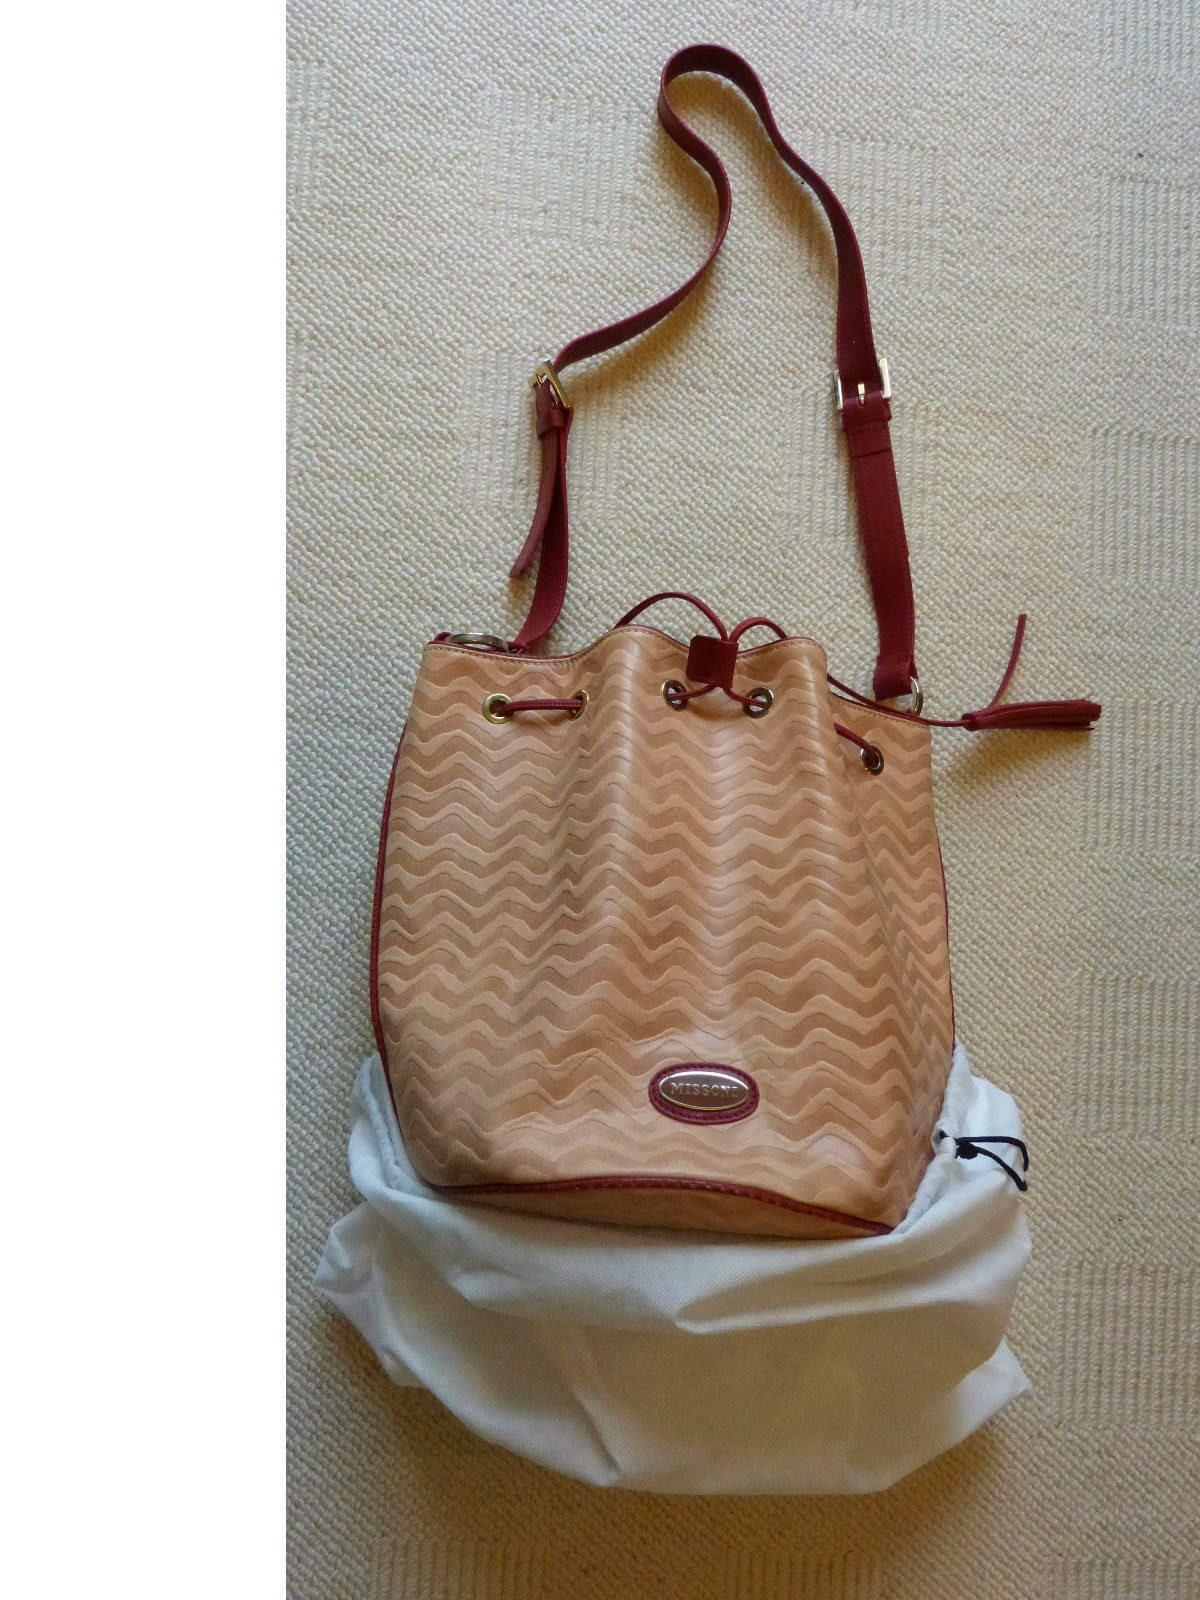 Missoni handbag NEW bucket style dusty rose leather made in Italy